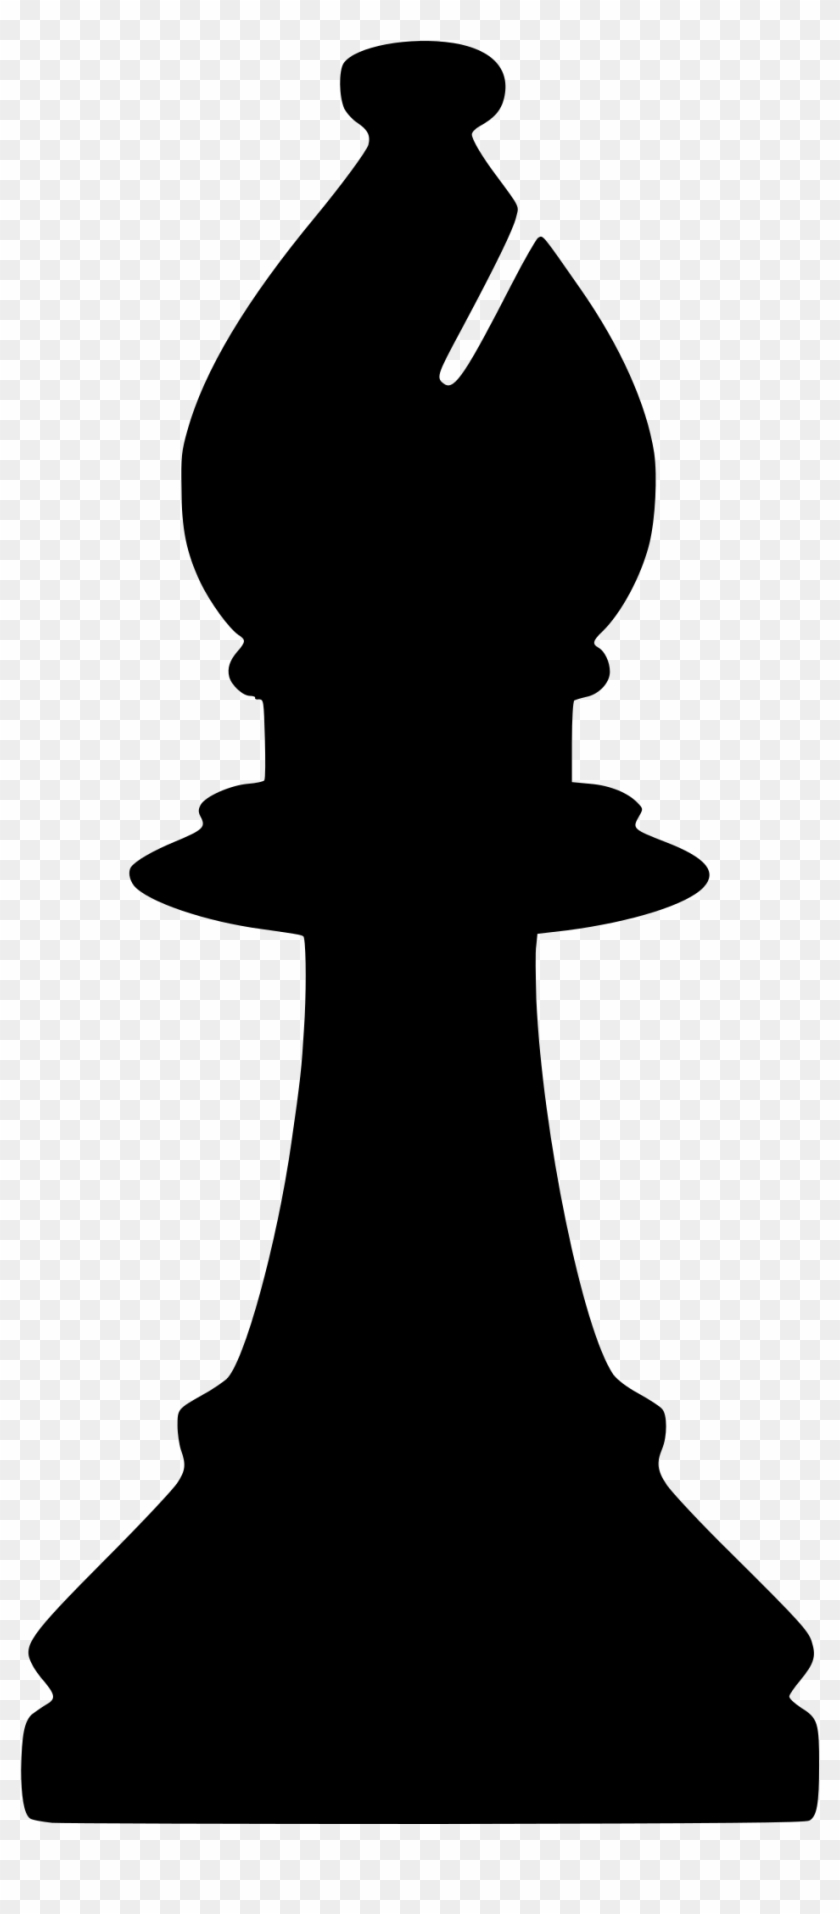 Silhouette Chess Piece Remix.